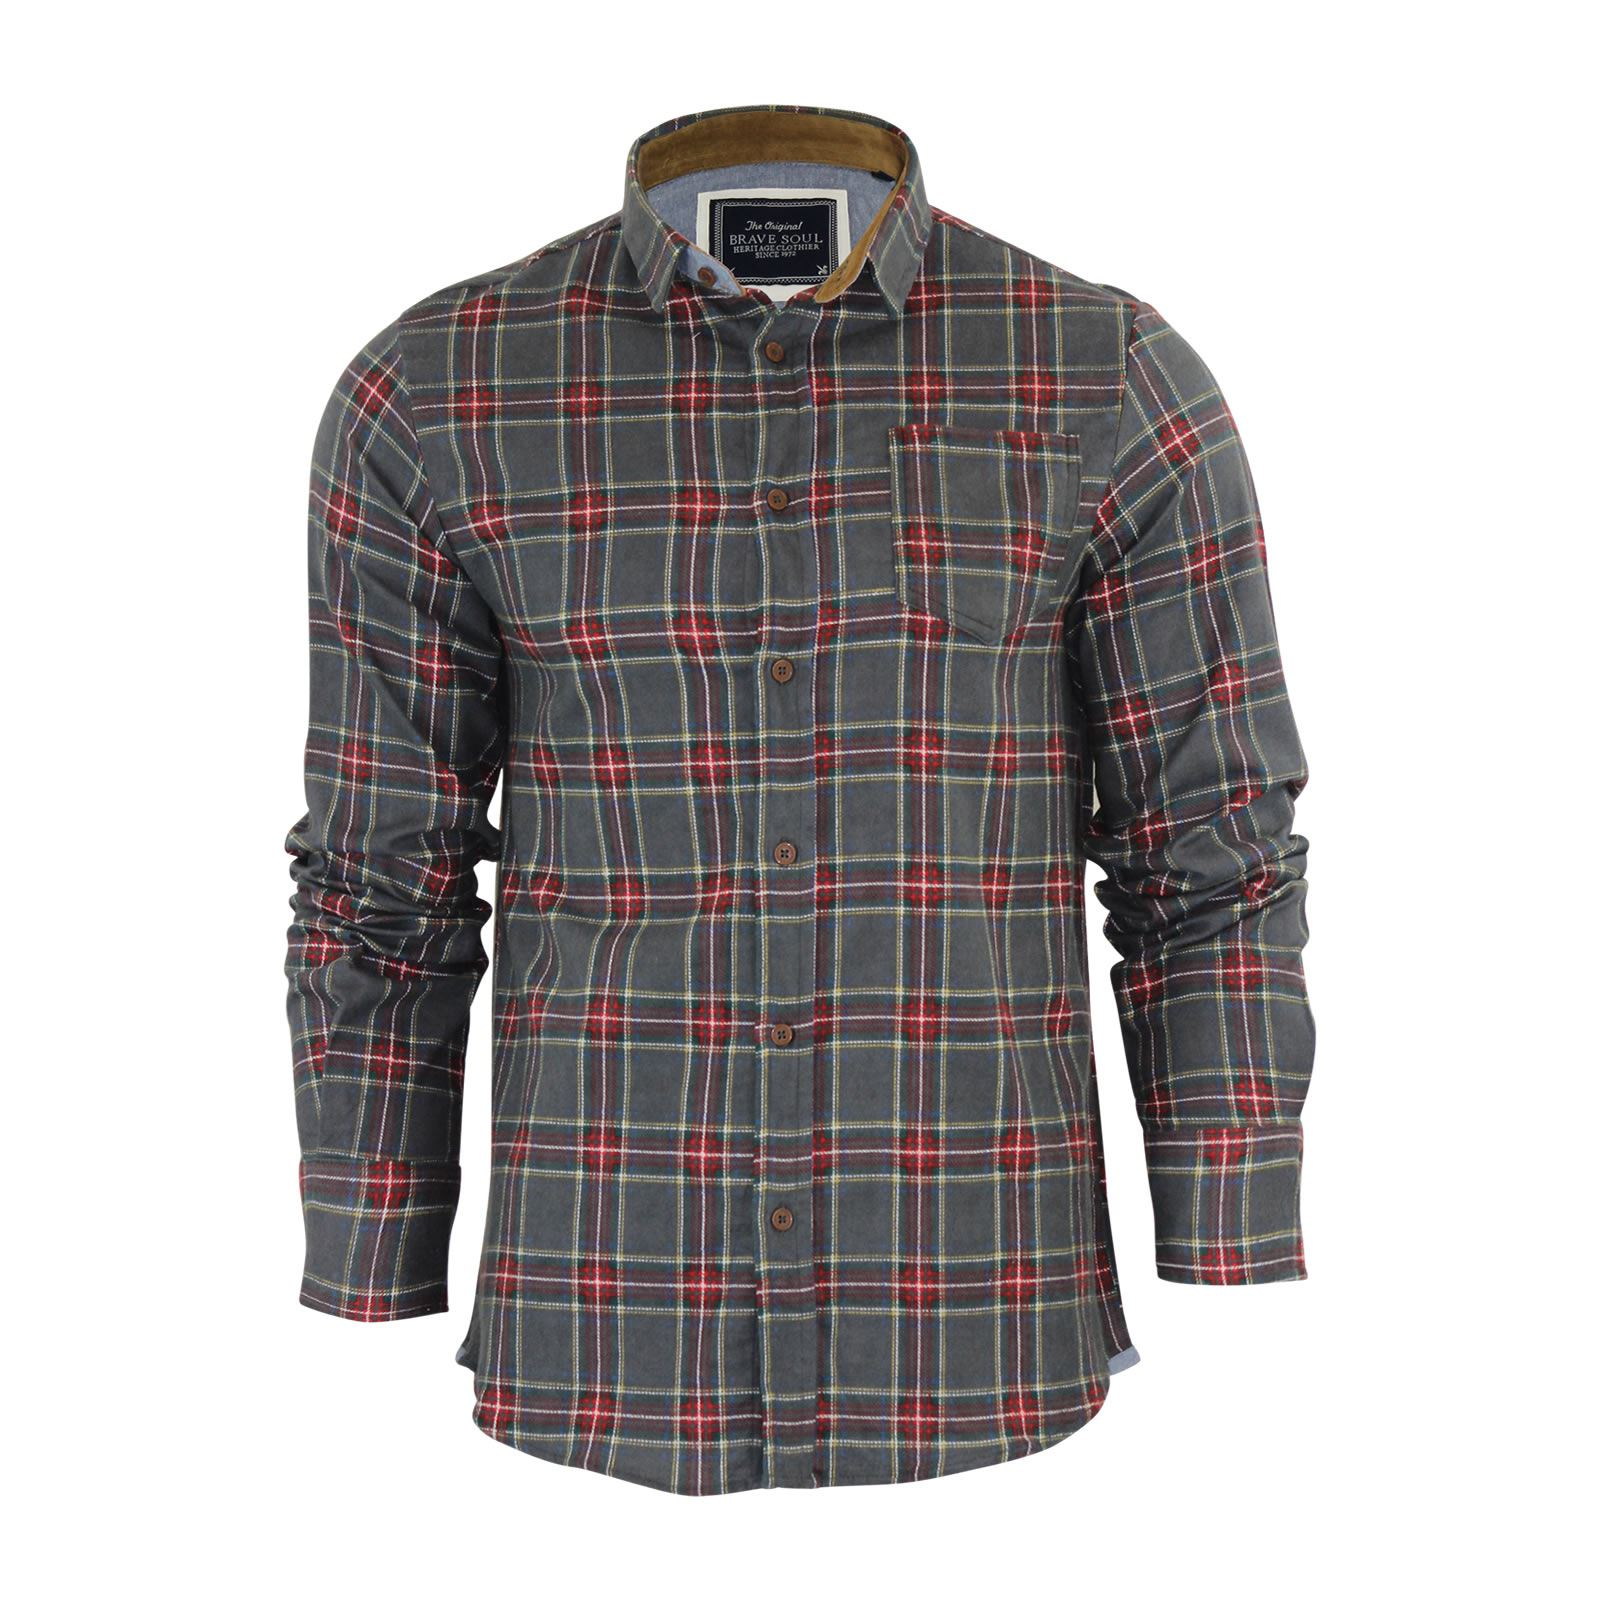 Brave-Soul-Mens-Check-Shirt-Flannel-Brushed-Cotton-Long-Sleeve-Casual-Top thumbnail 25